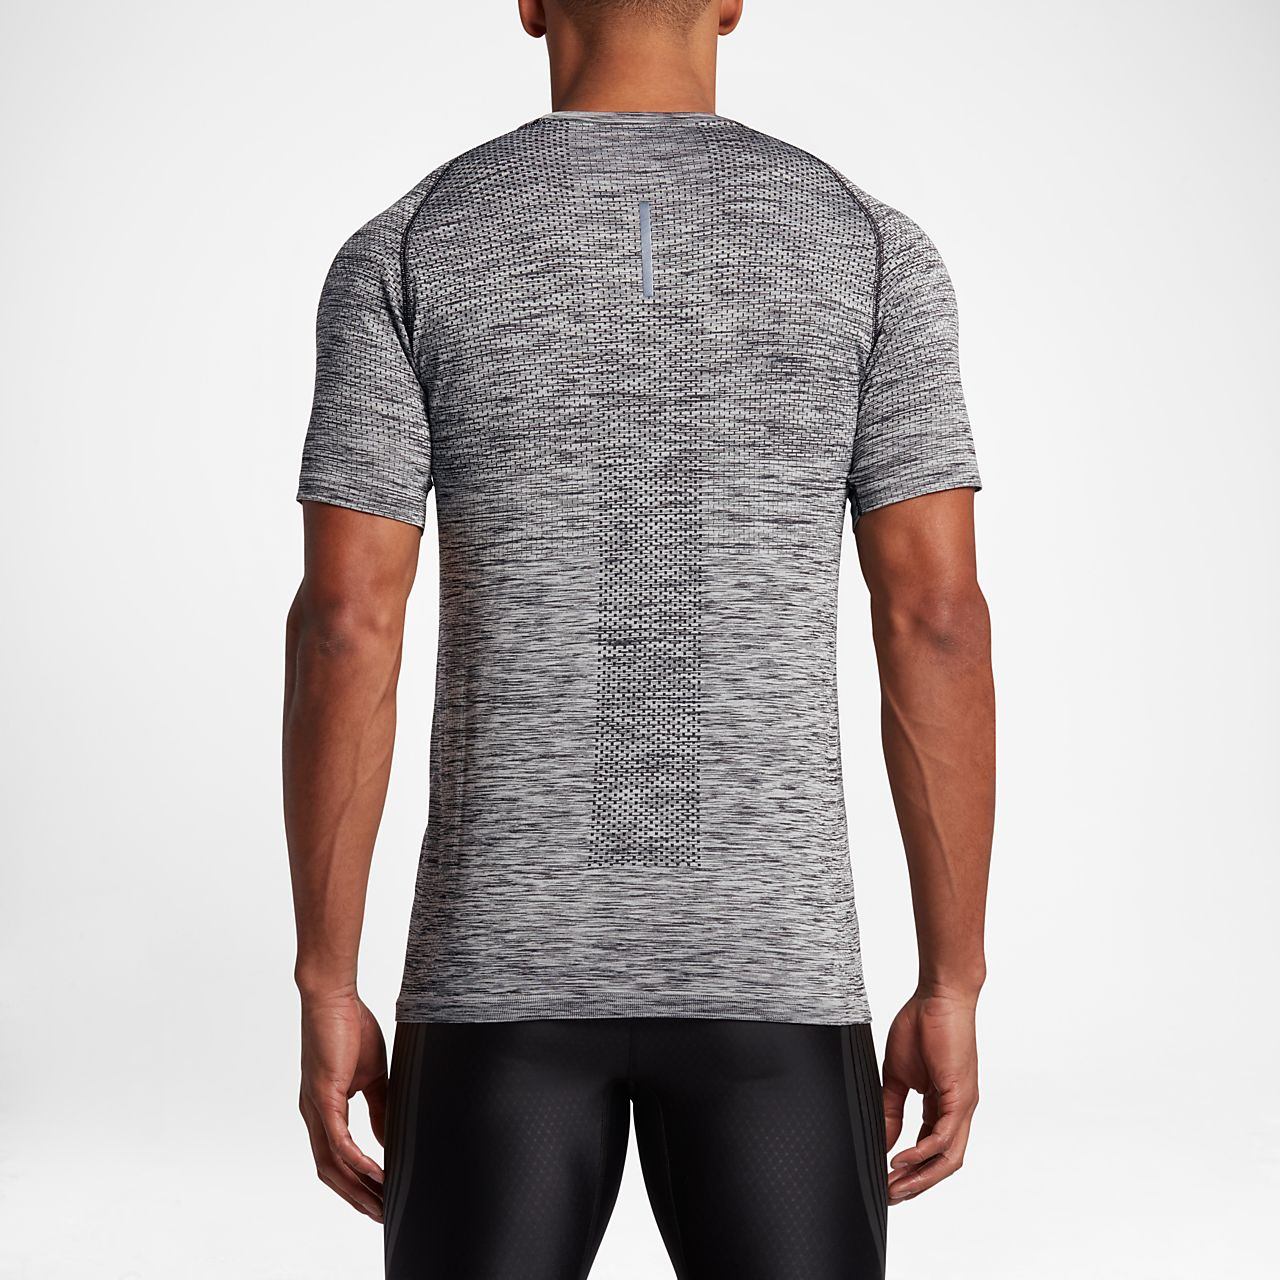 Nike Dry Knit Men's Short Sleeve Running Top Black/Heather